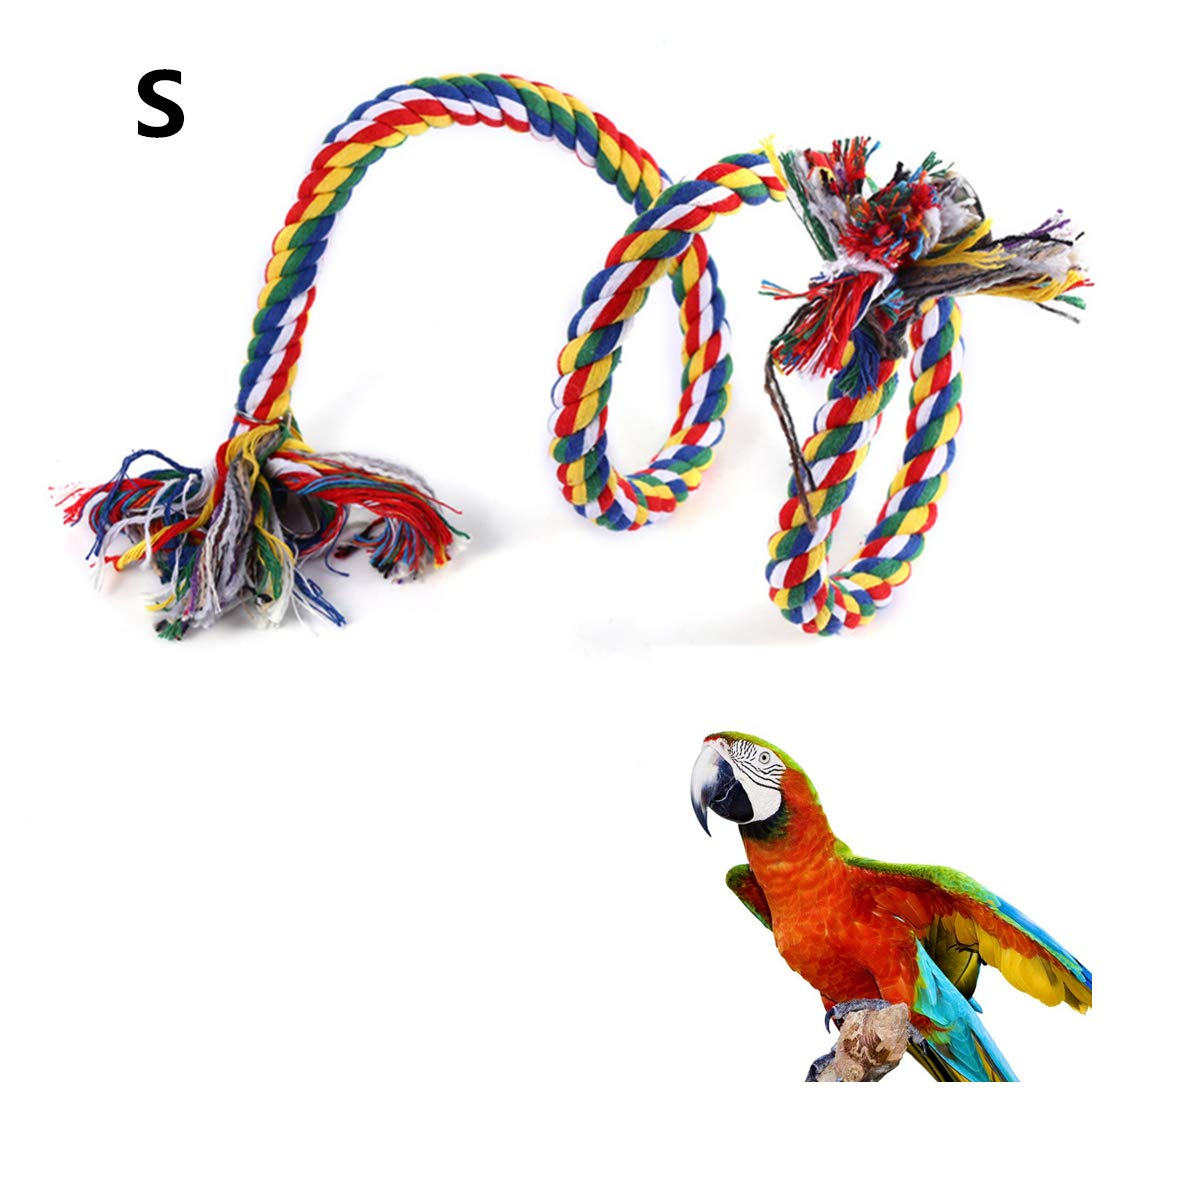 Citmage Bird Perch Thick Cotton Rope Bungee Bird Swing Climbing Toys with Bell and Hook Bite, Climb, Chew, Swing, Provide Exercise for Parrots, Macaws, Parakeets, African Gray Swing for Parrots African Gray(Colorful L)